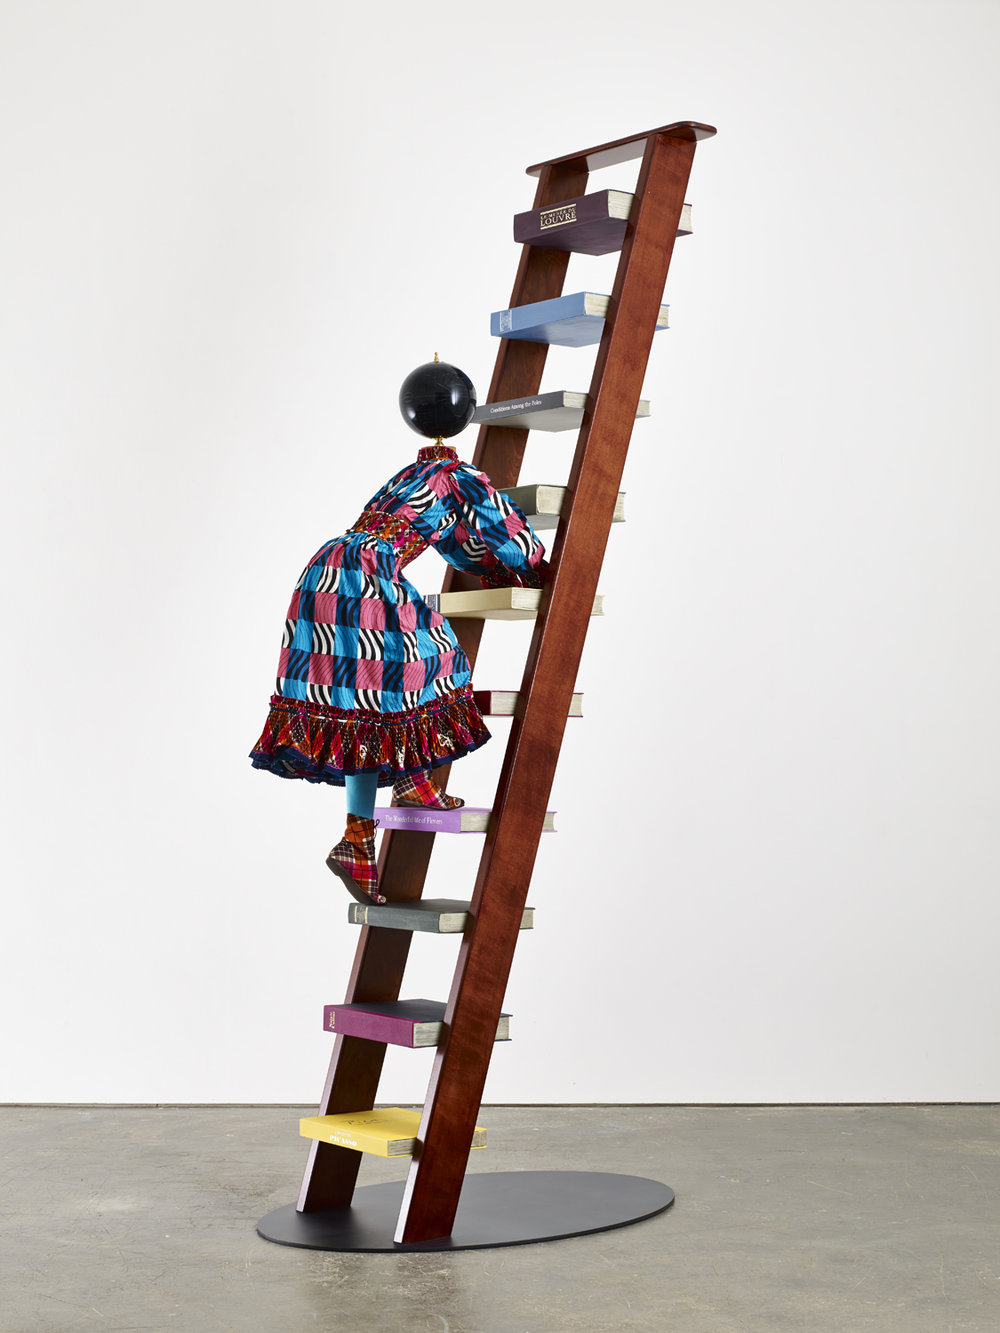 Magic Ladder Kid IV 2014, Mannequin, Dutch wax printed cotton textile, leather, fiberglass, wooden ladder, steel baseplate, globe 115 x 55 x 32 inches